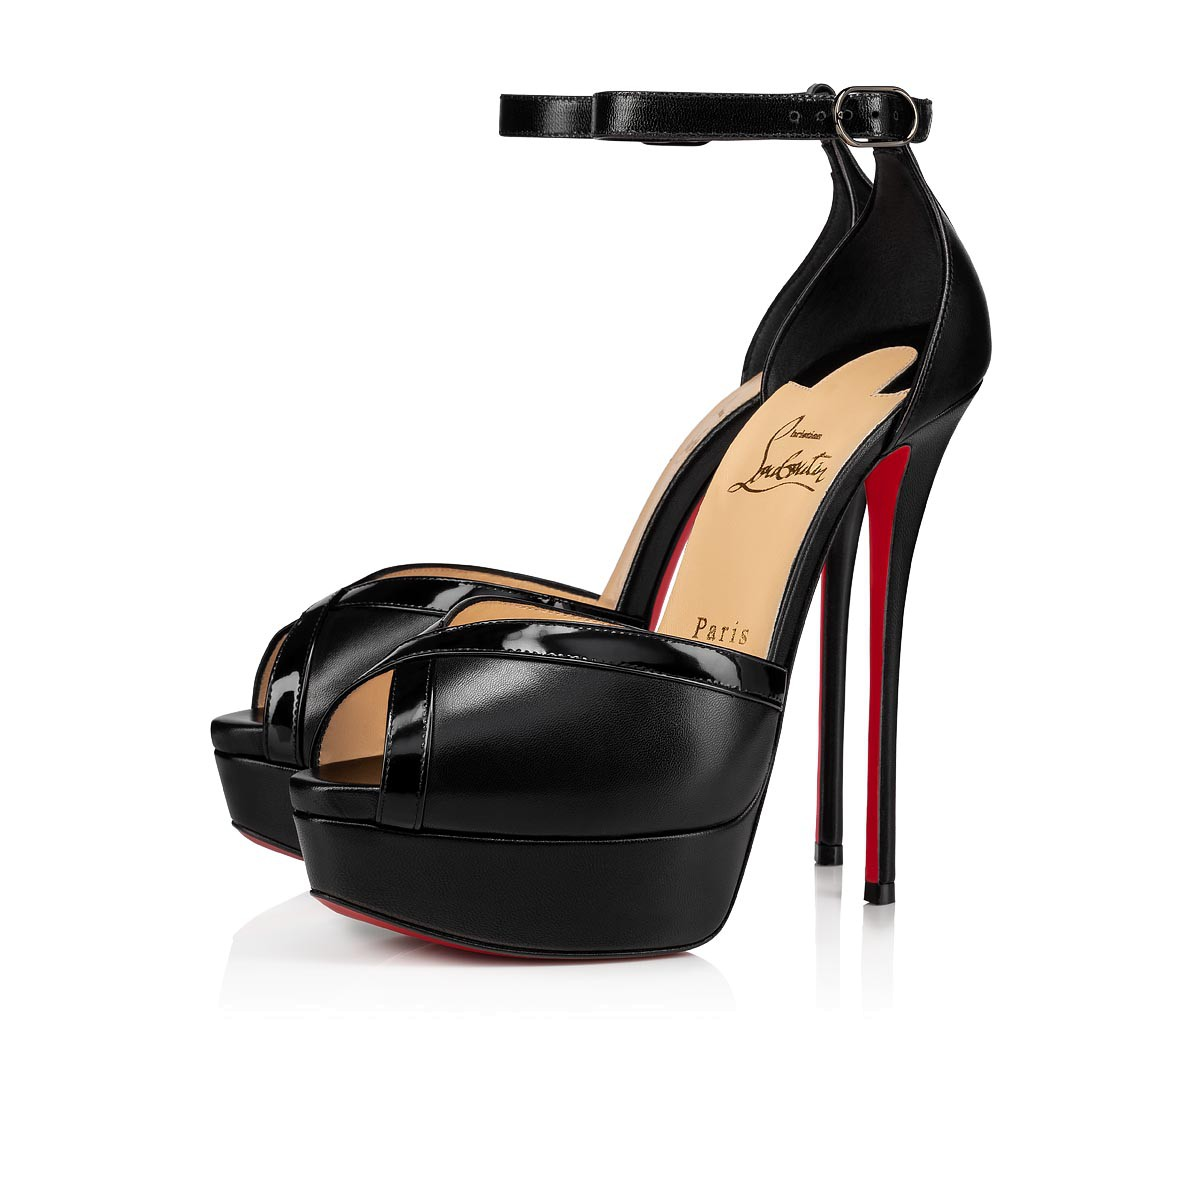 Souliers - Cathy - Christian Louboutin